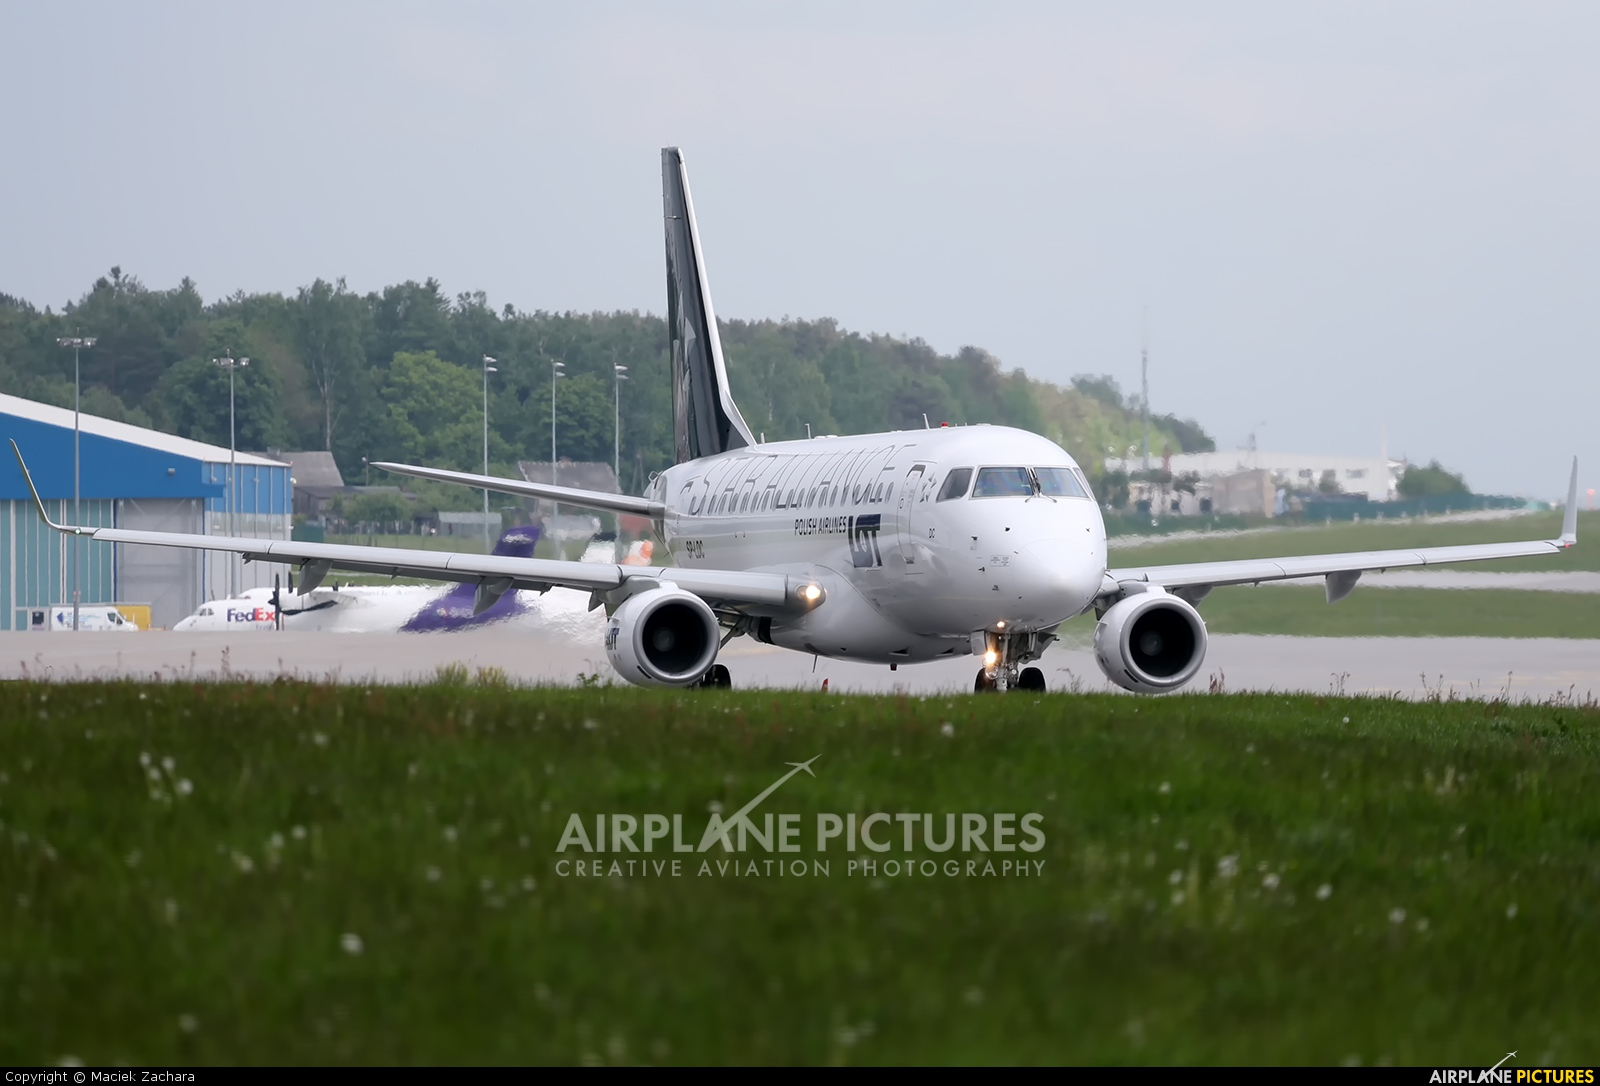 LOT - Polish Airlines SP-LDC aircraft at Gdańsk - Lech Wałęsa